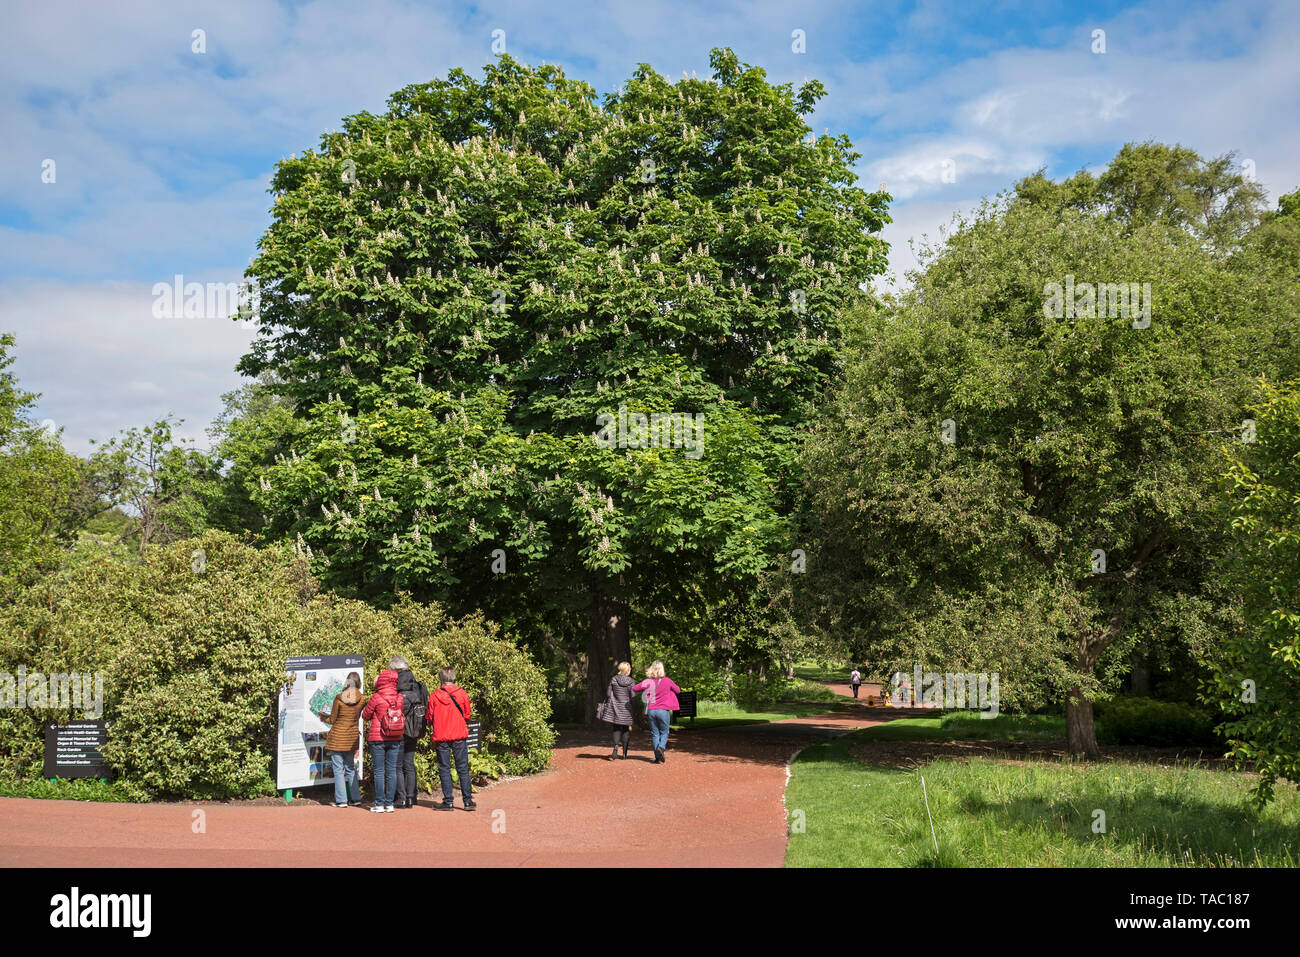 Visitors to the Royal Botanic Garden in Edinburgh consulting the noticeboard bnear the East Gate. - Stock Image